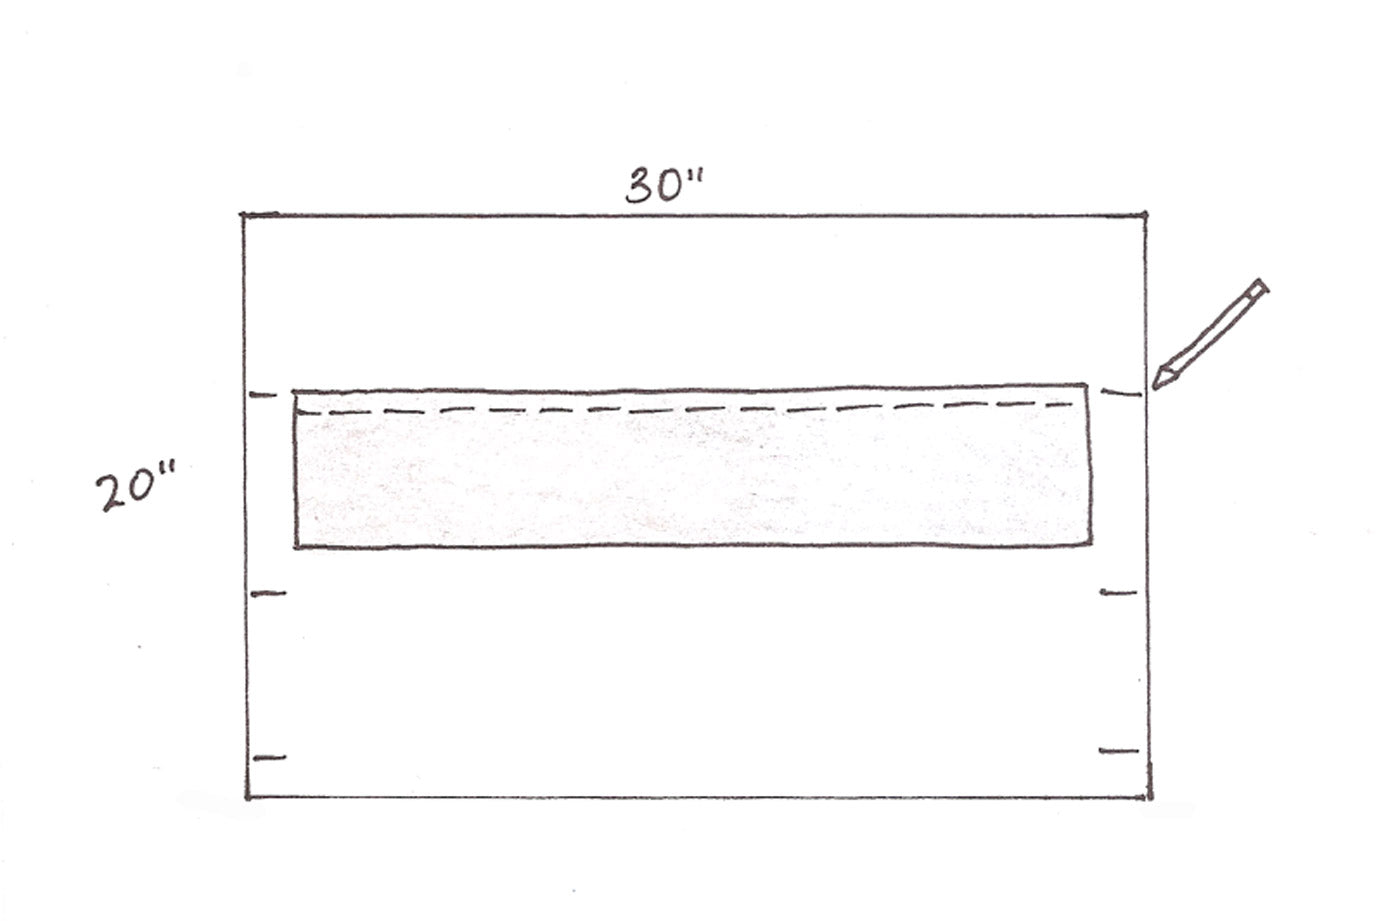 Diagram for Attaching the Rows